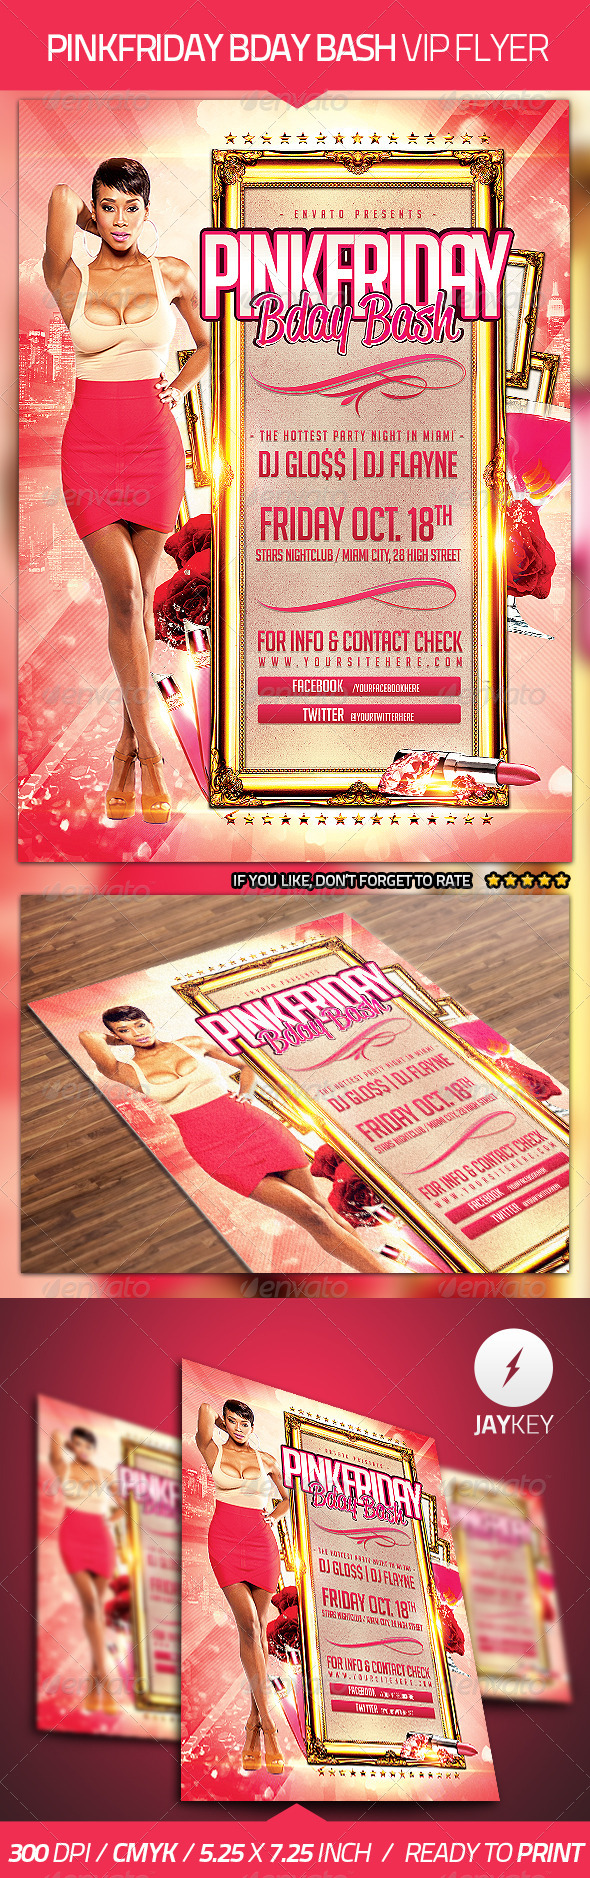 GraphicRiver Bday Bash Party Flyer 4453635